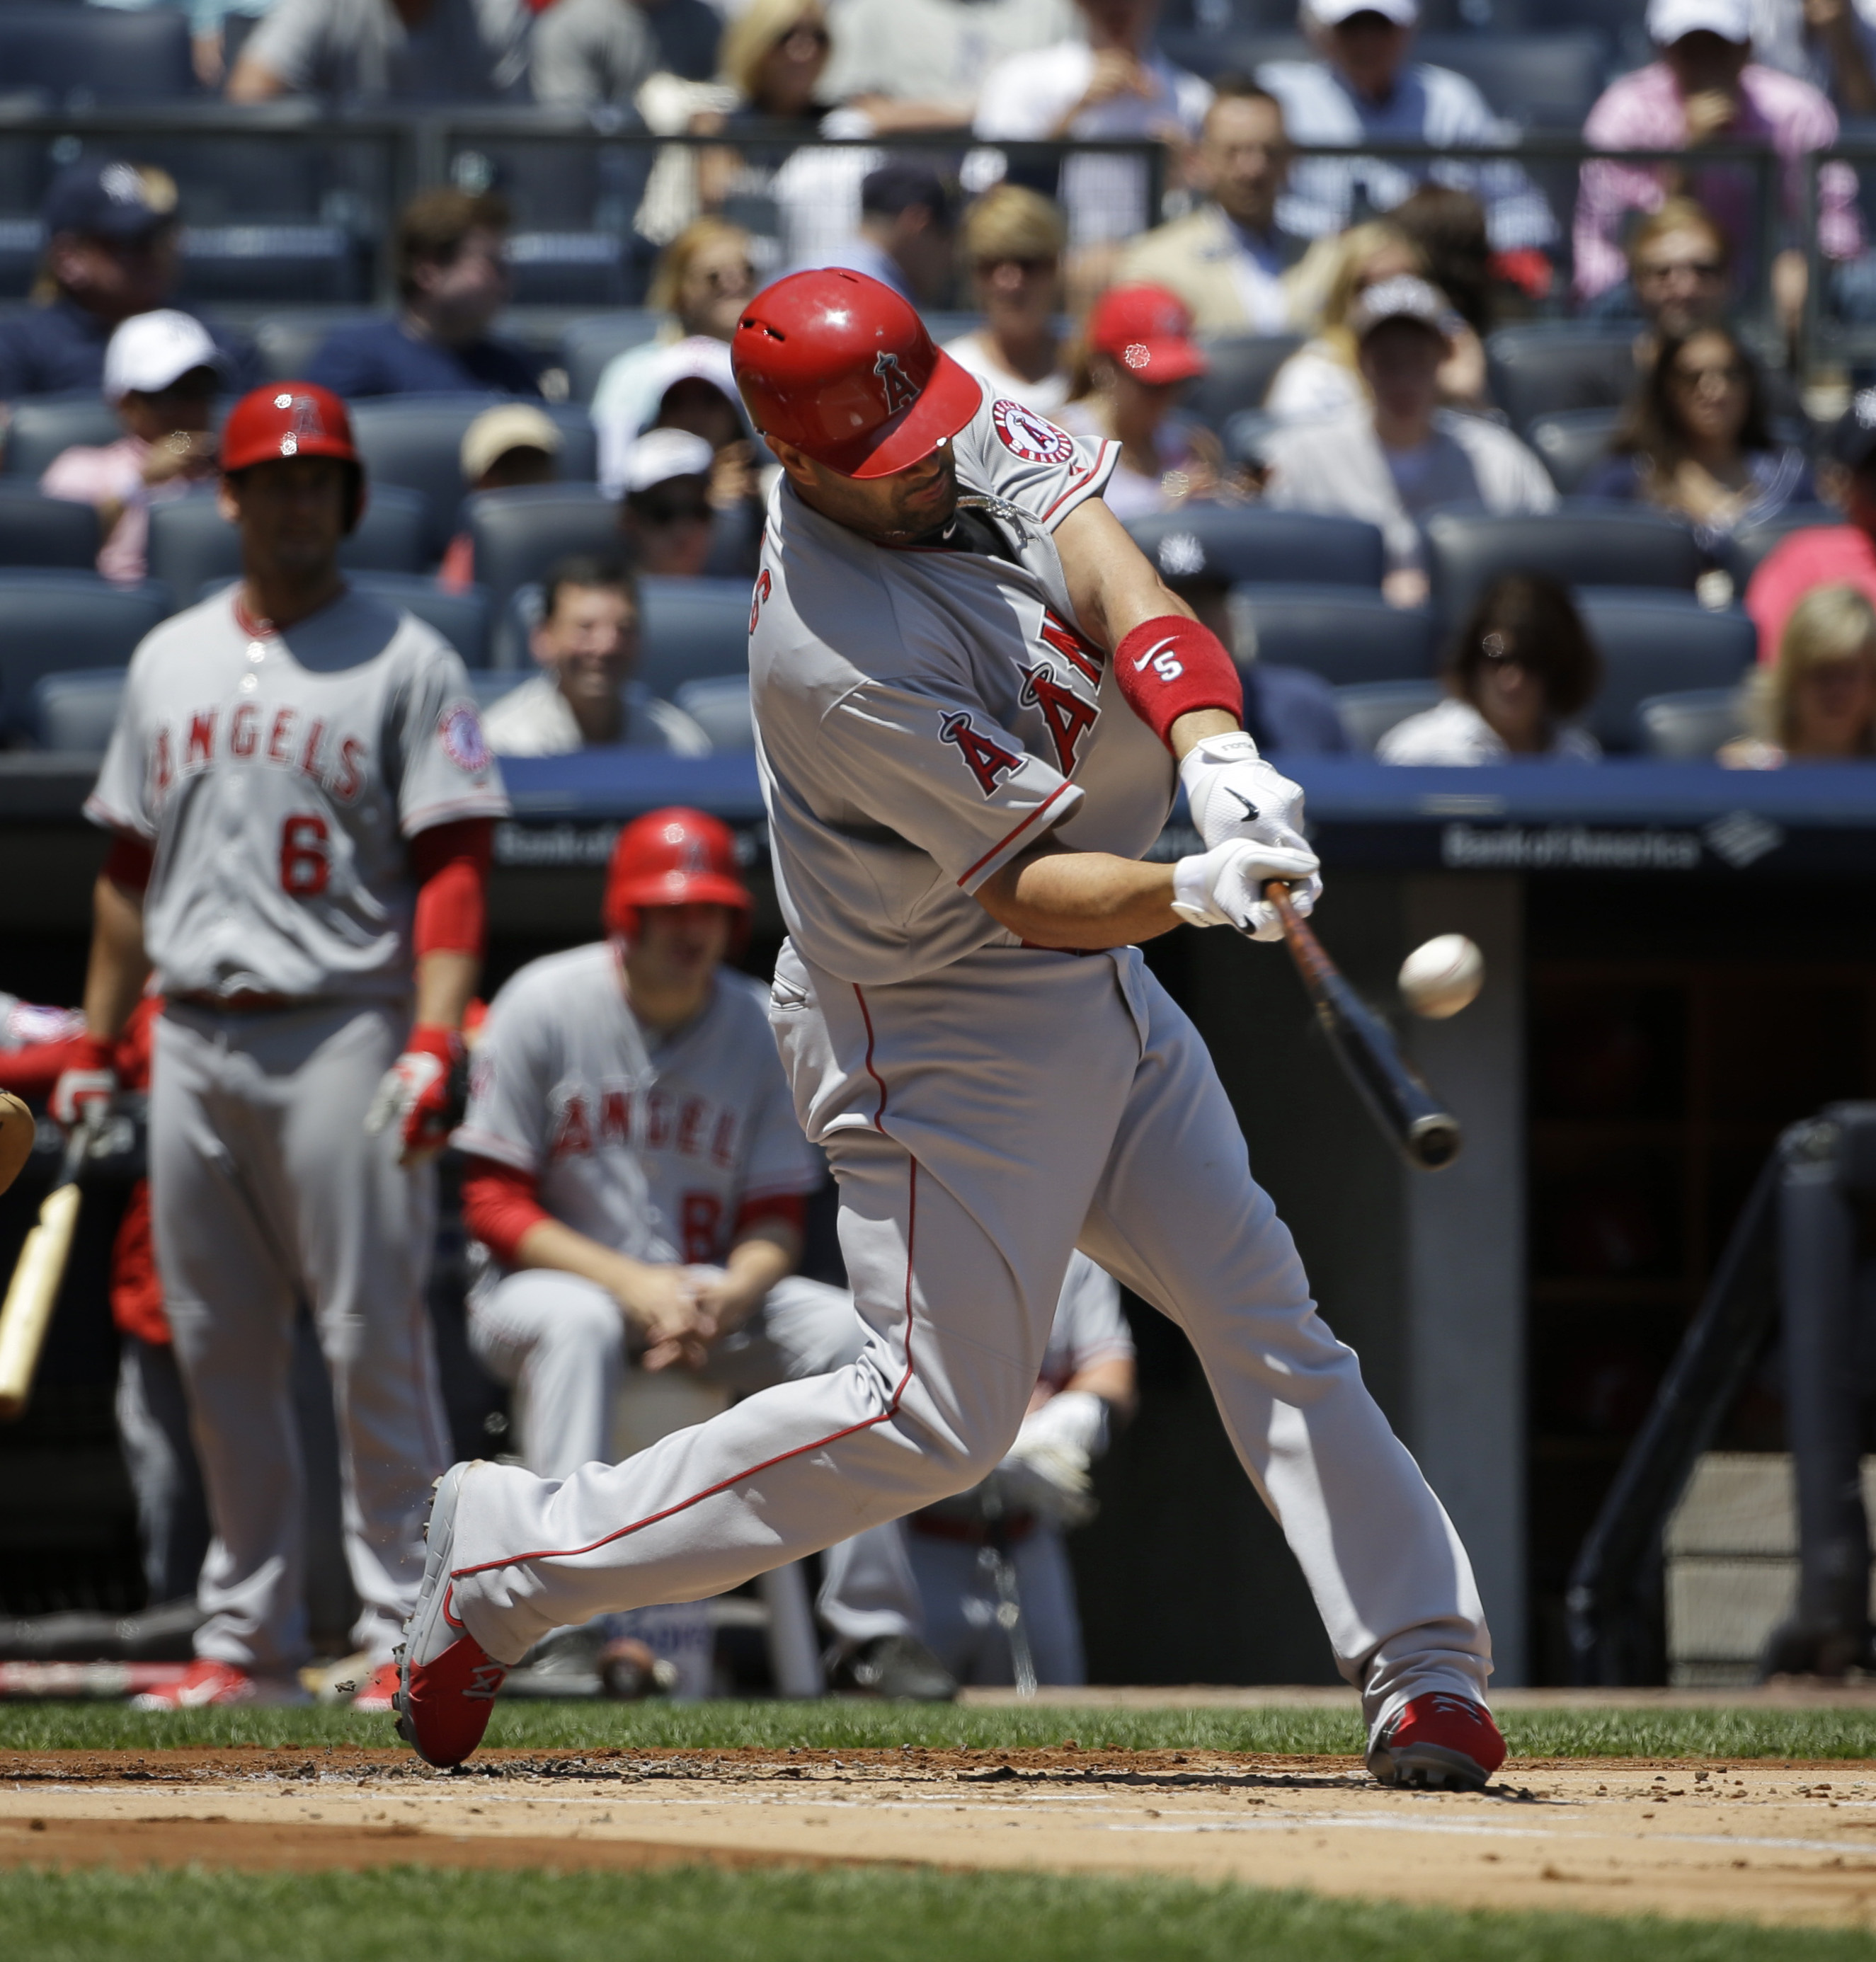 Los Angeles Angels' Albert Pujols hits a solo home run during the first inning of the baseball game against the New York Yankees, Sunday, June 7, 2015, in New York. (AP Photo/Seth Wenig)